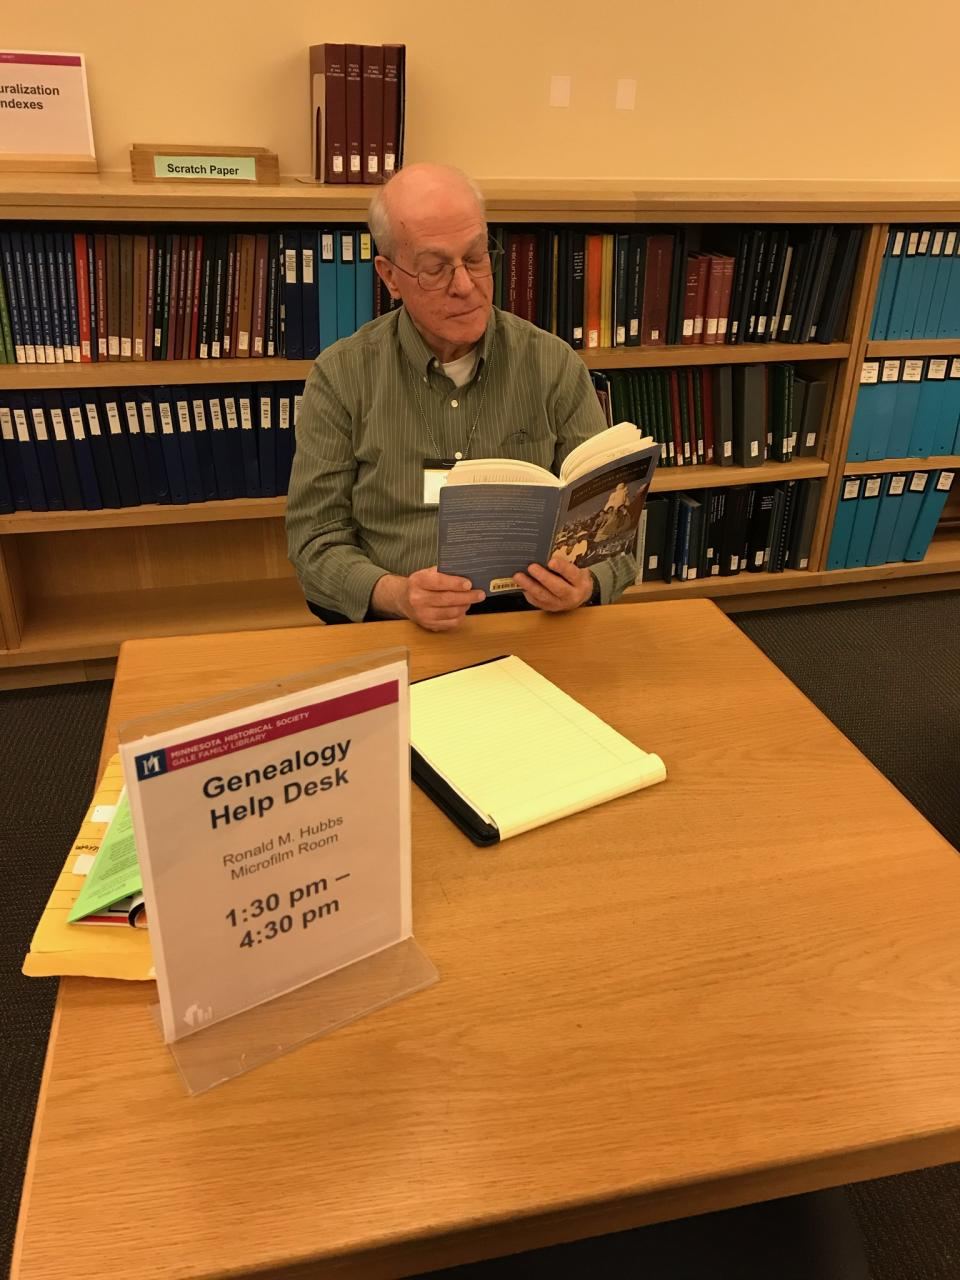 Man reading a book while sitting at a table in the library